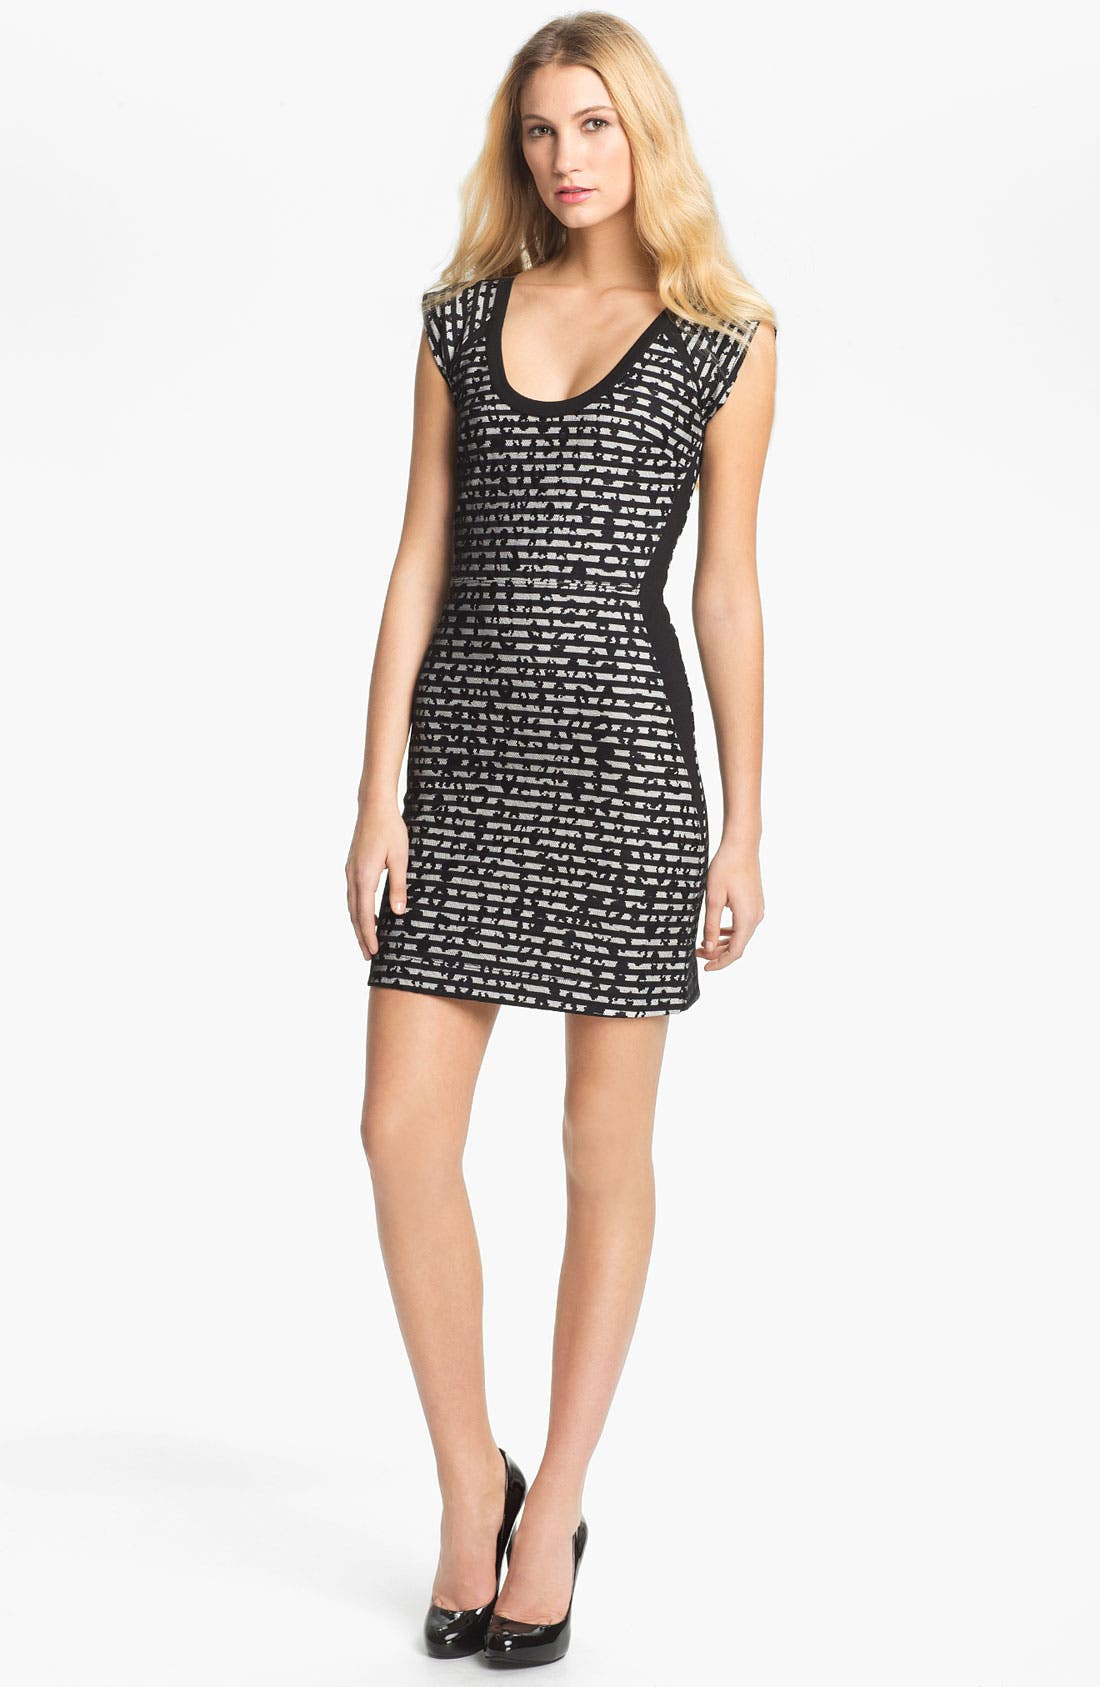 Alternate Image 1 Selected - French Connection 'City Lace' Print Sheath Dress